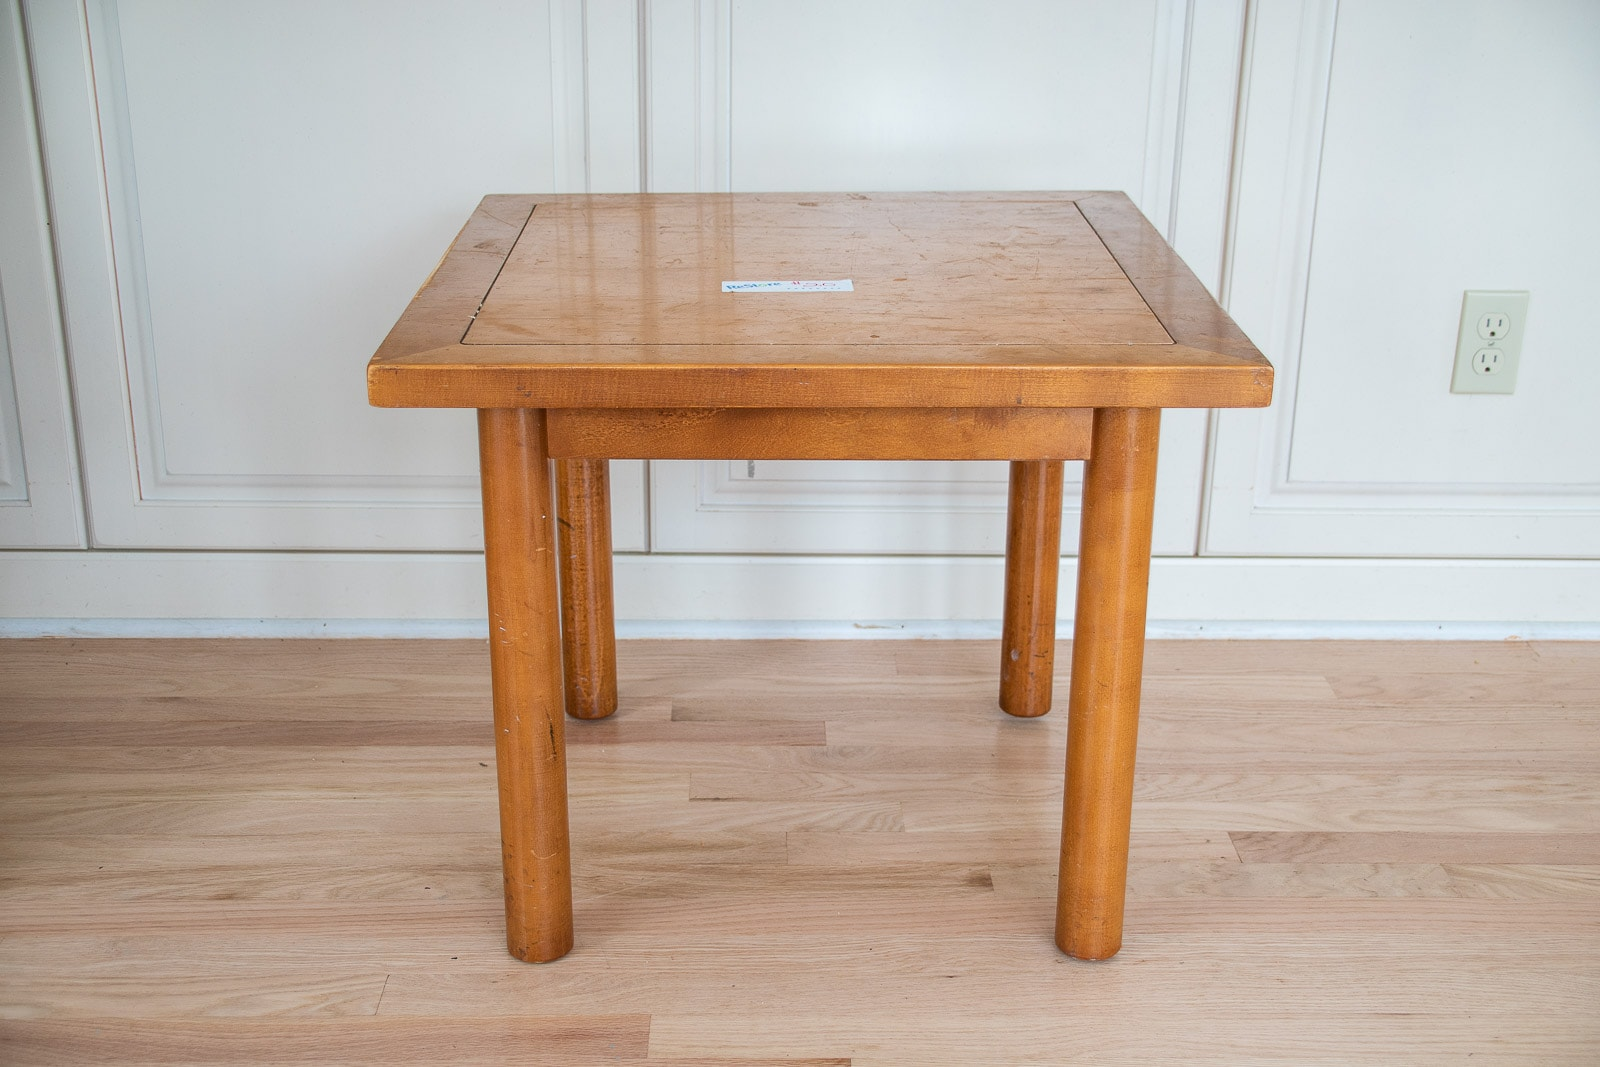 table turned ottoman before